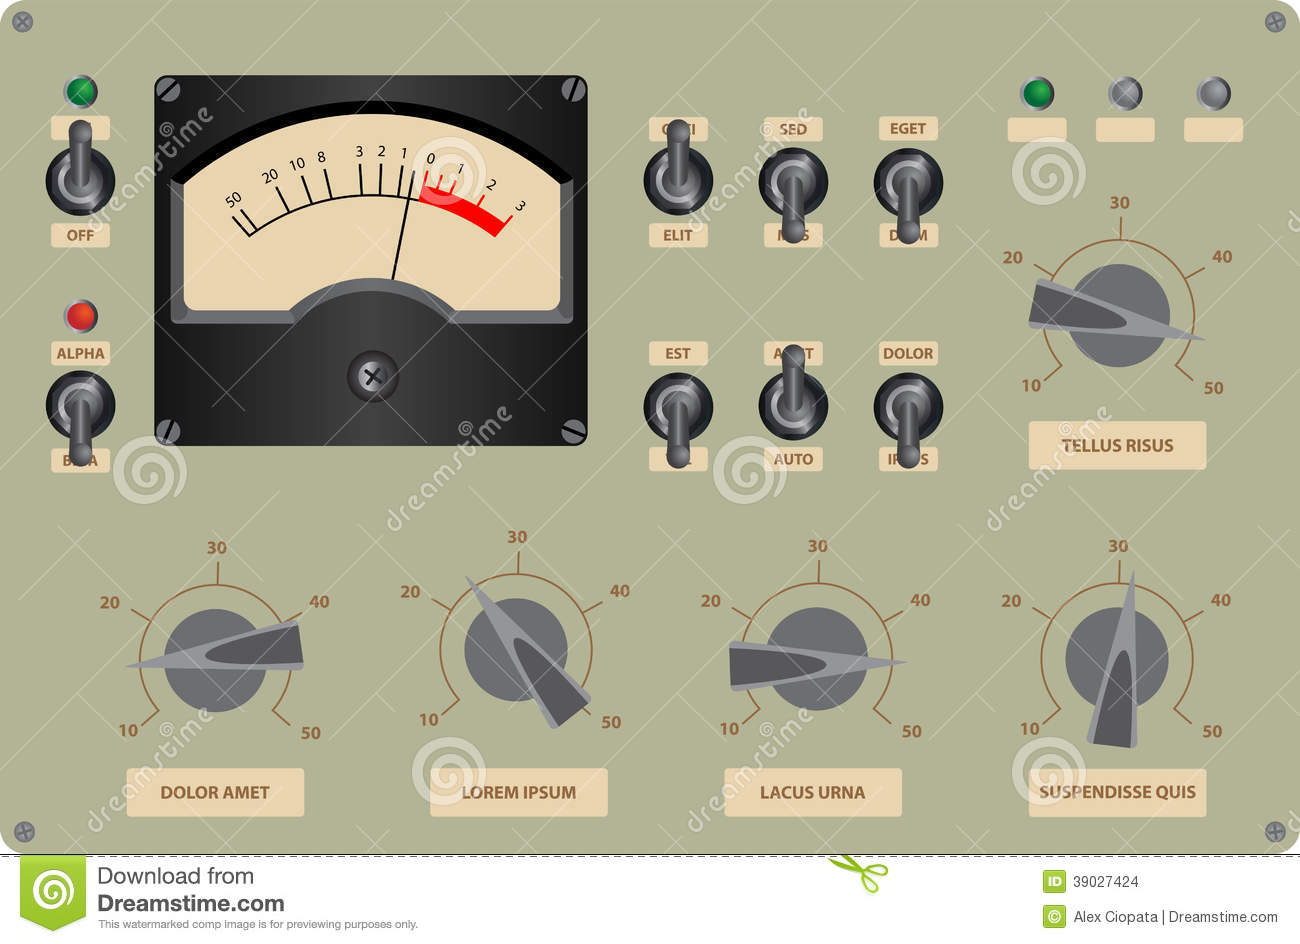 Stock Images Control Panel Editable Vector Illustration Analog Image39027424 on old airplane radio